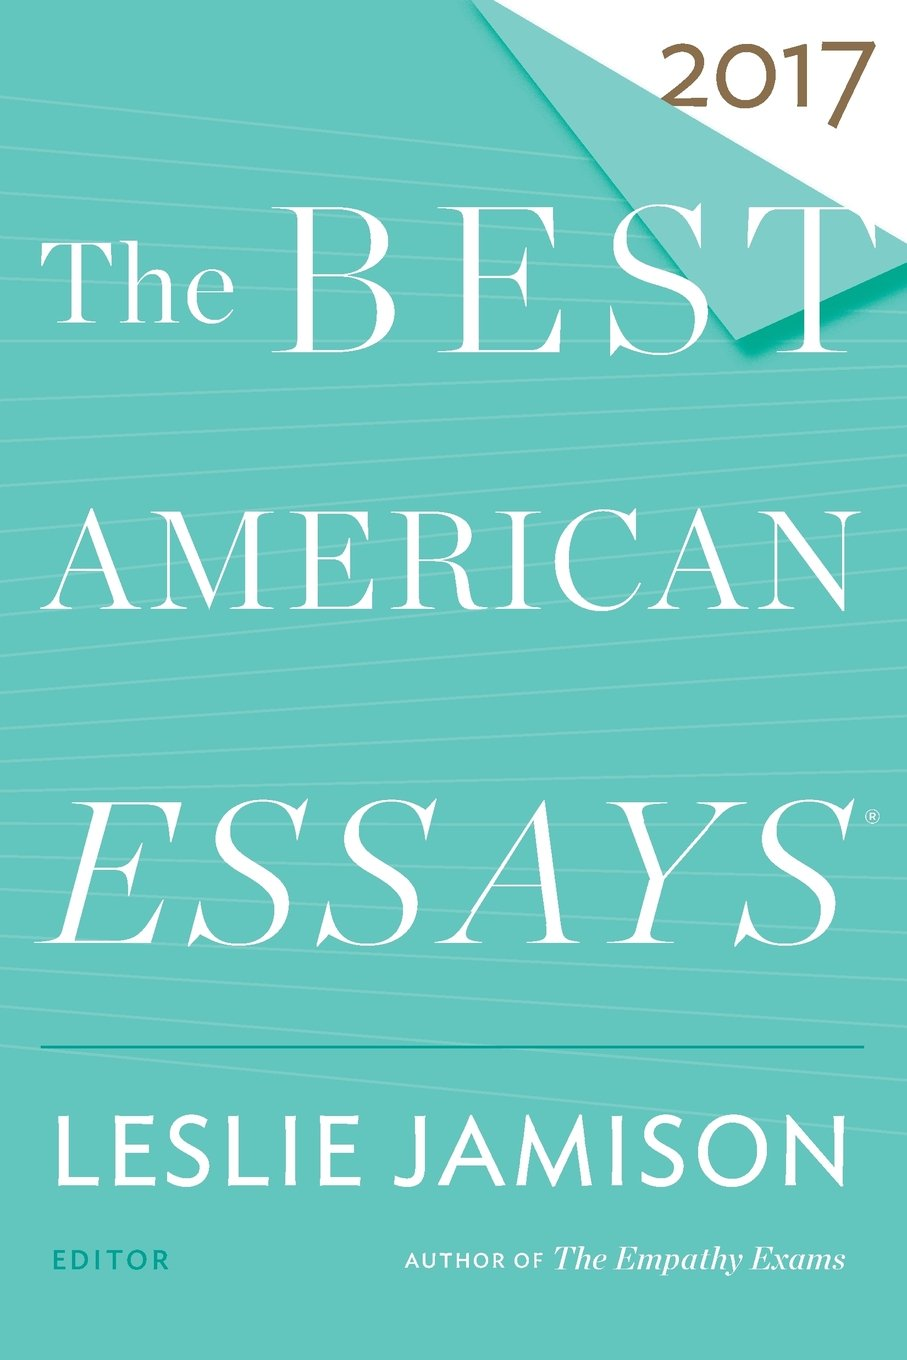 002 Essay Example 61tzl Nruvl The Best American Essays Phenomenal 2016 Pdf Download Audiobook Sparknotes Full